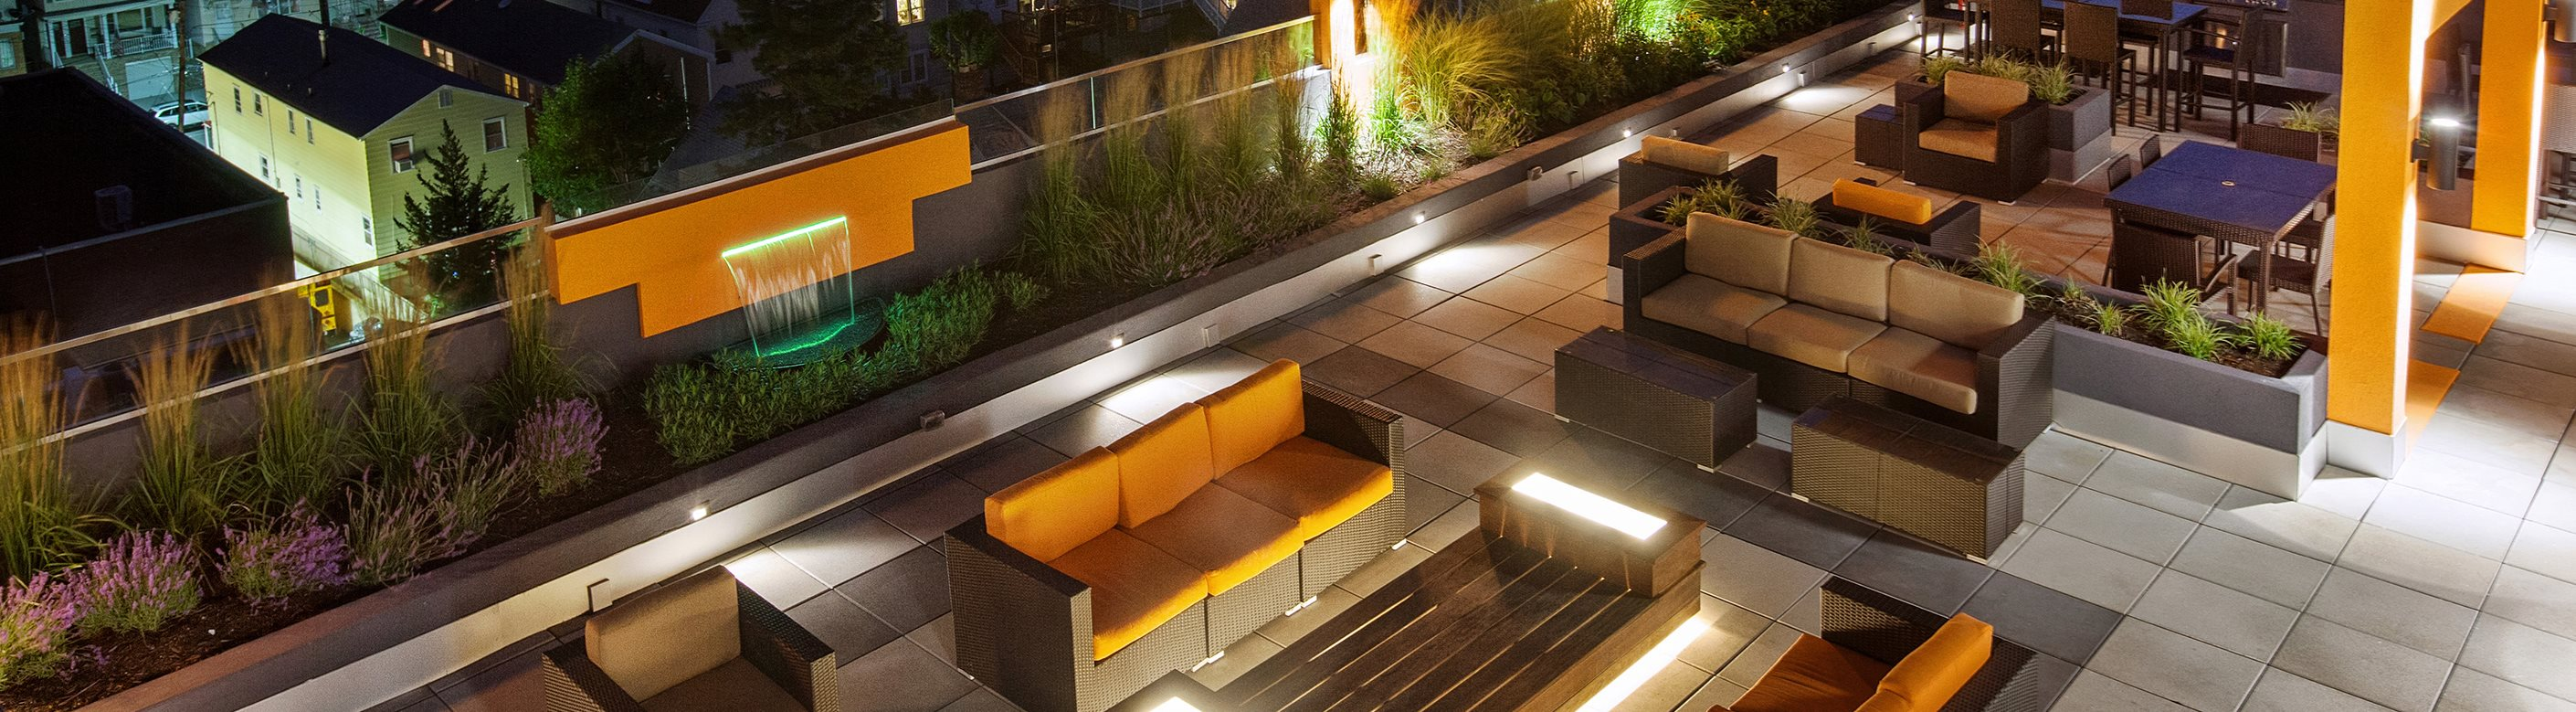 Rooftop deck lounge area